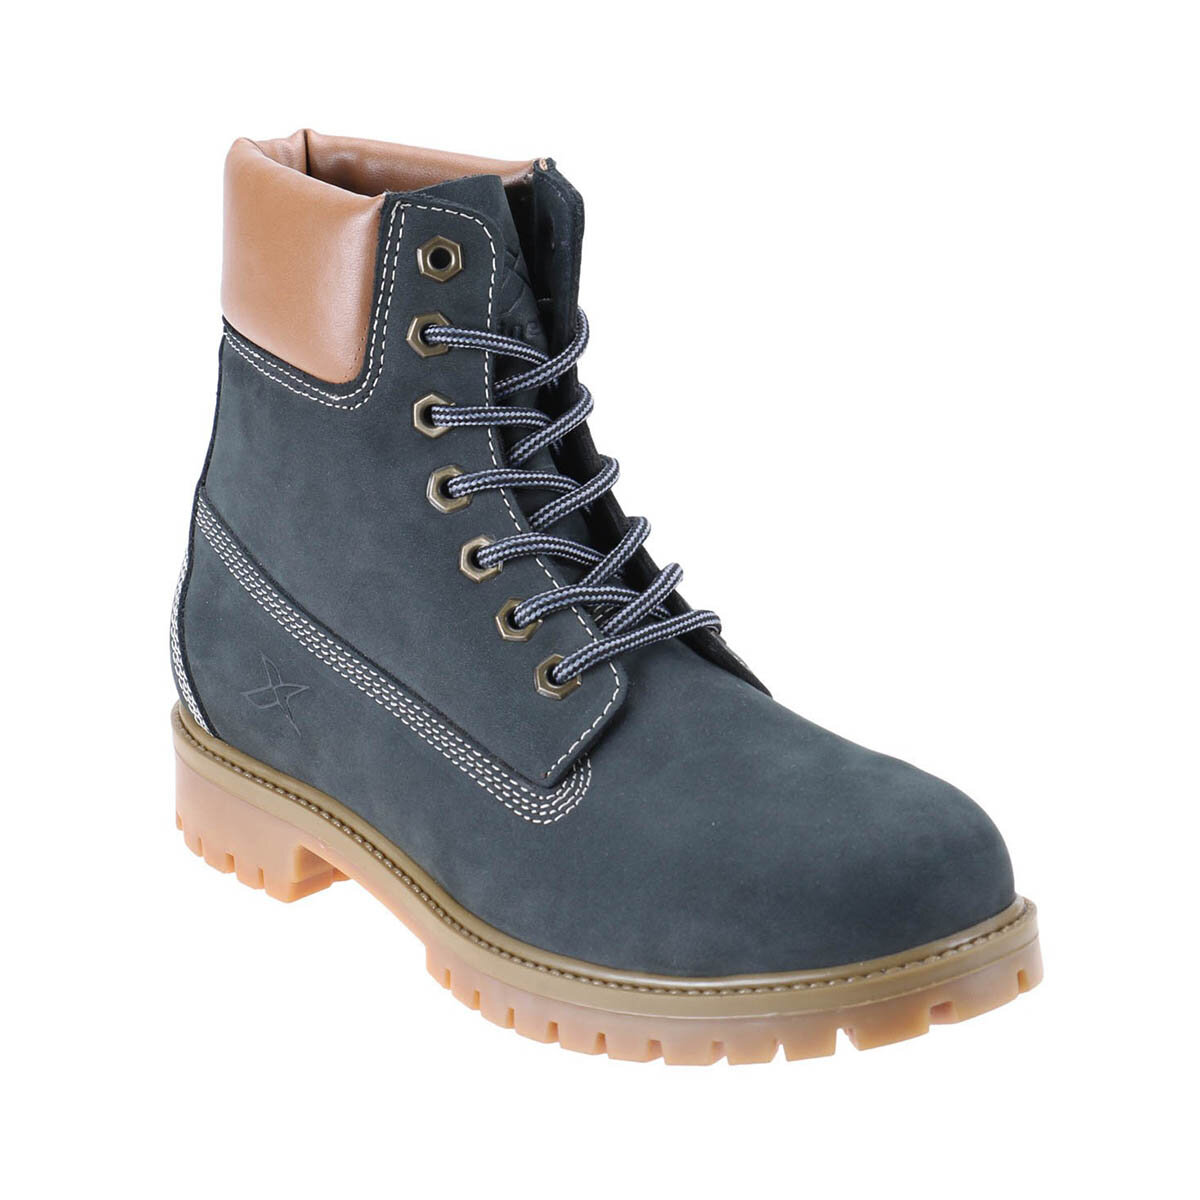 FLO 1252634 Navy Blue Men 'S Boots KINETIX